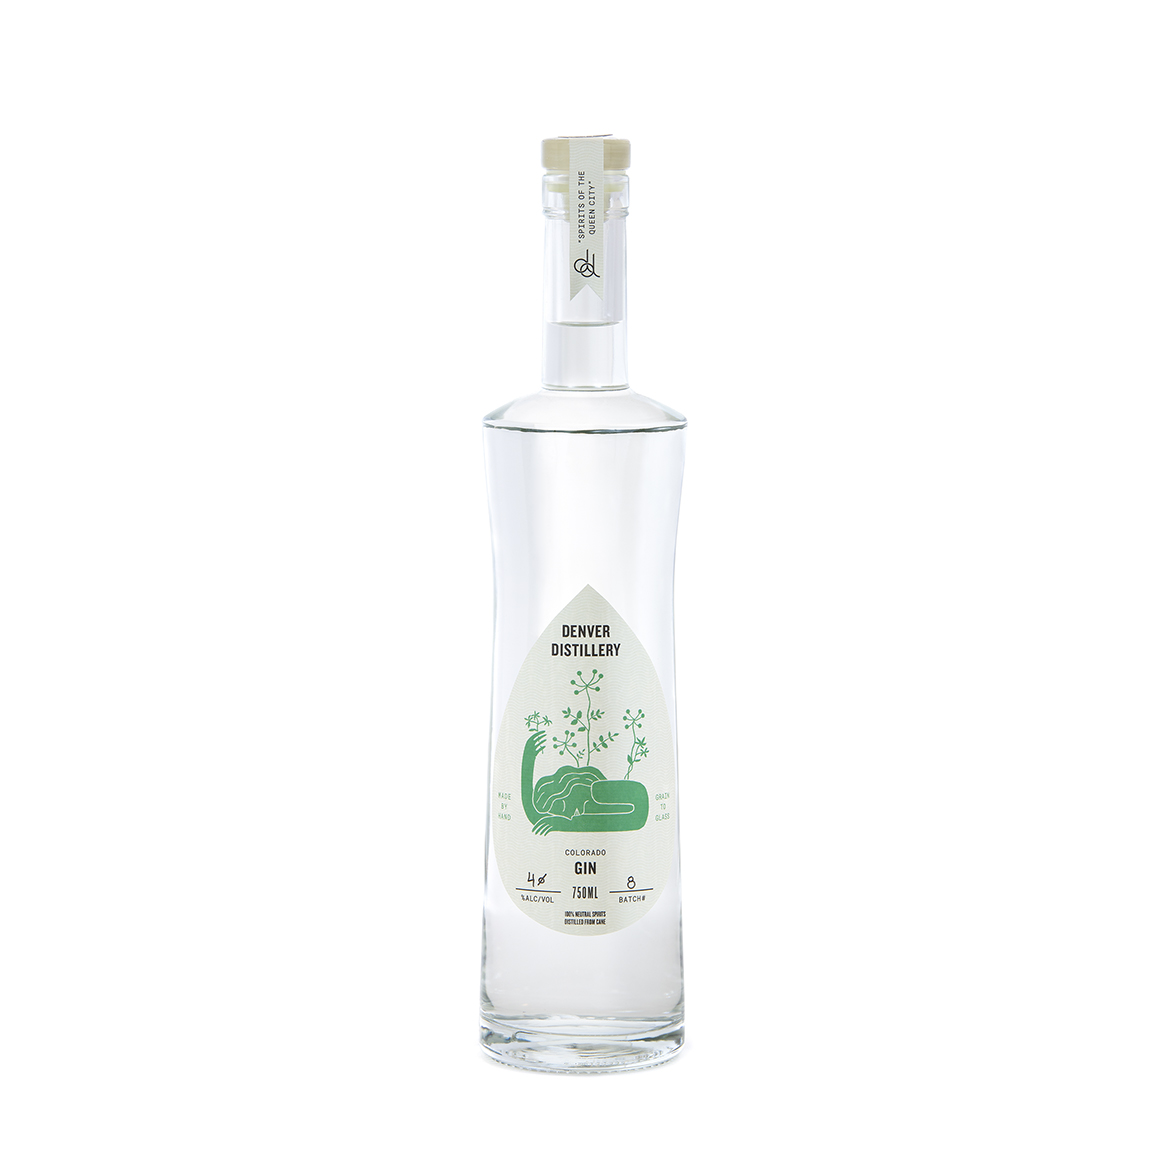 GIN - – very floral-forward gin with a touch of pine– distilled in a Bombay style-rum base